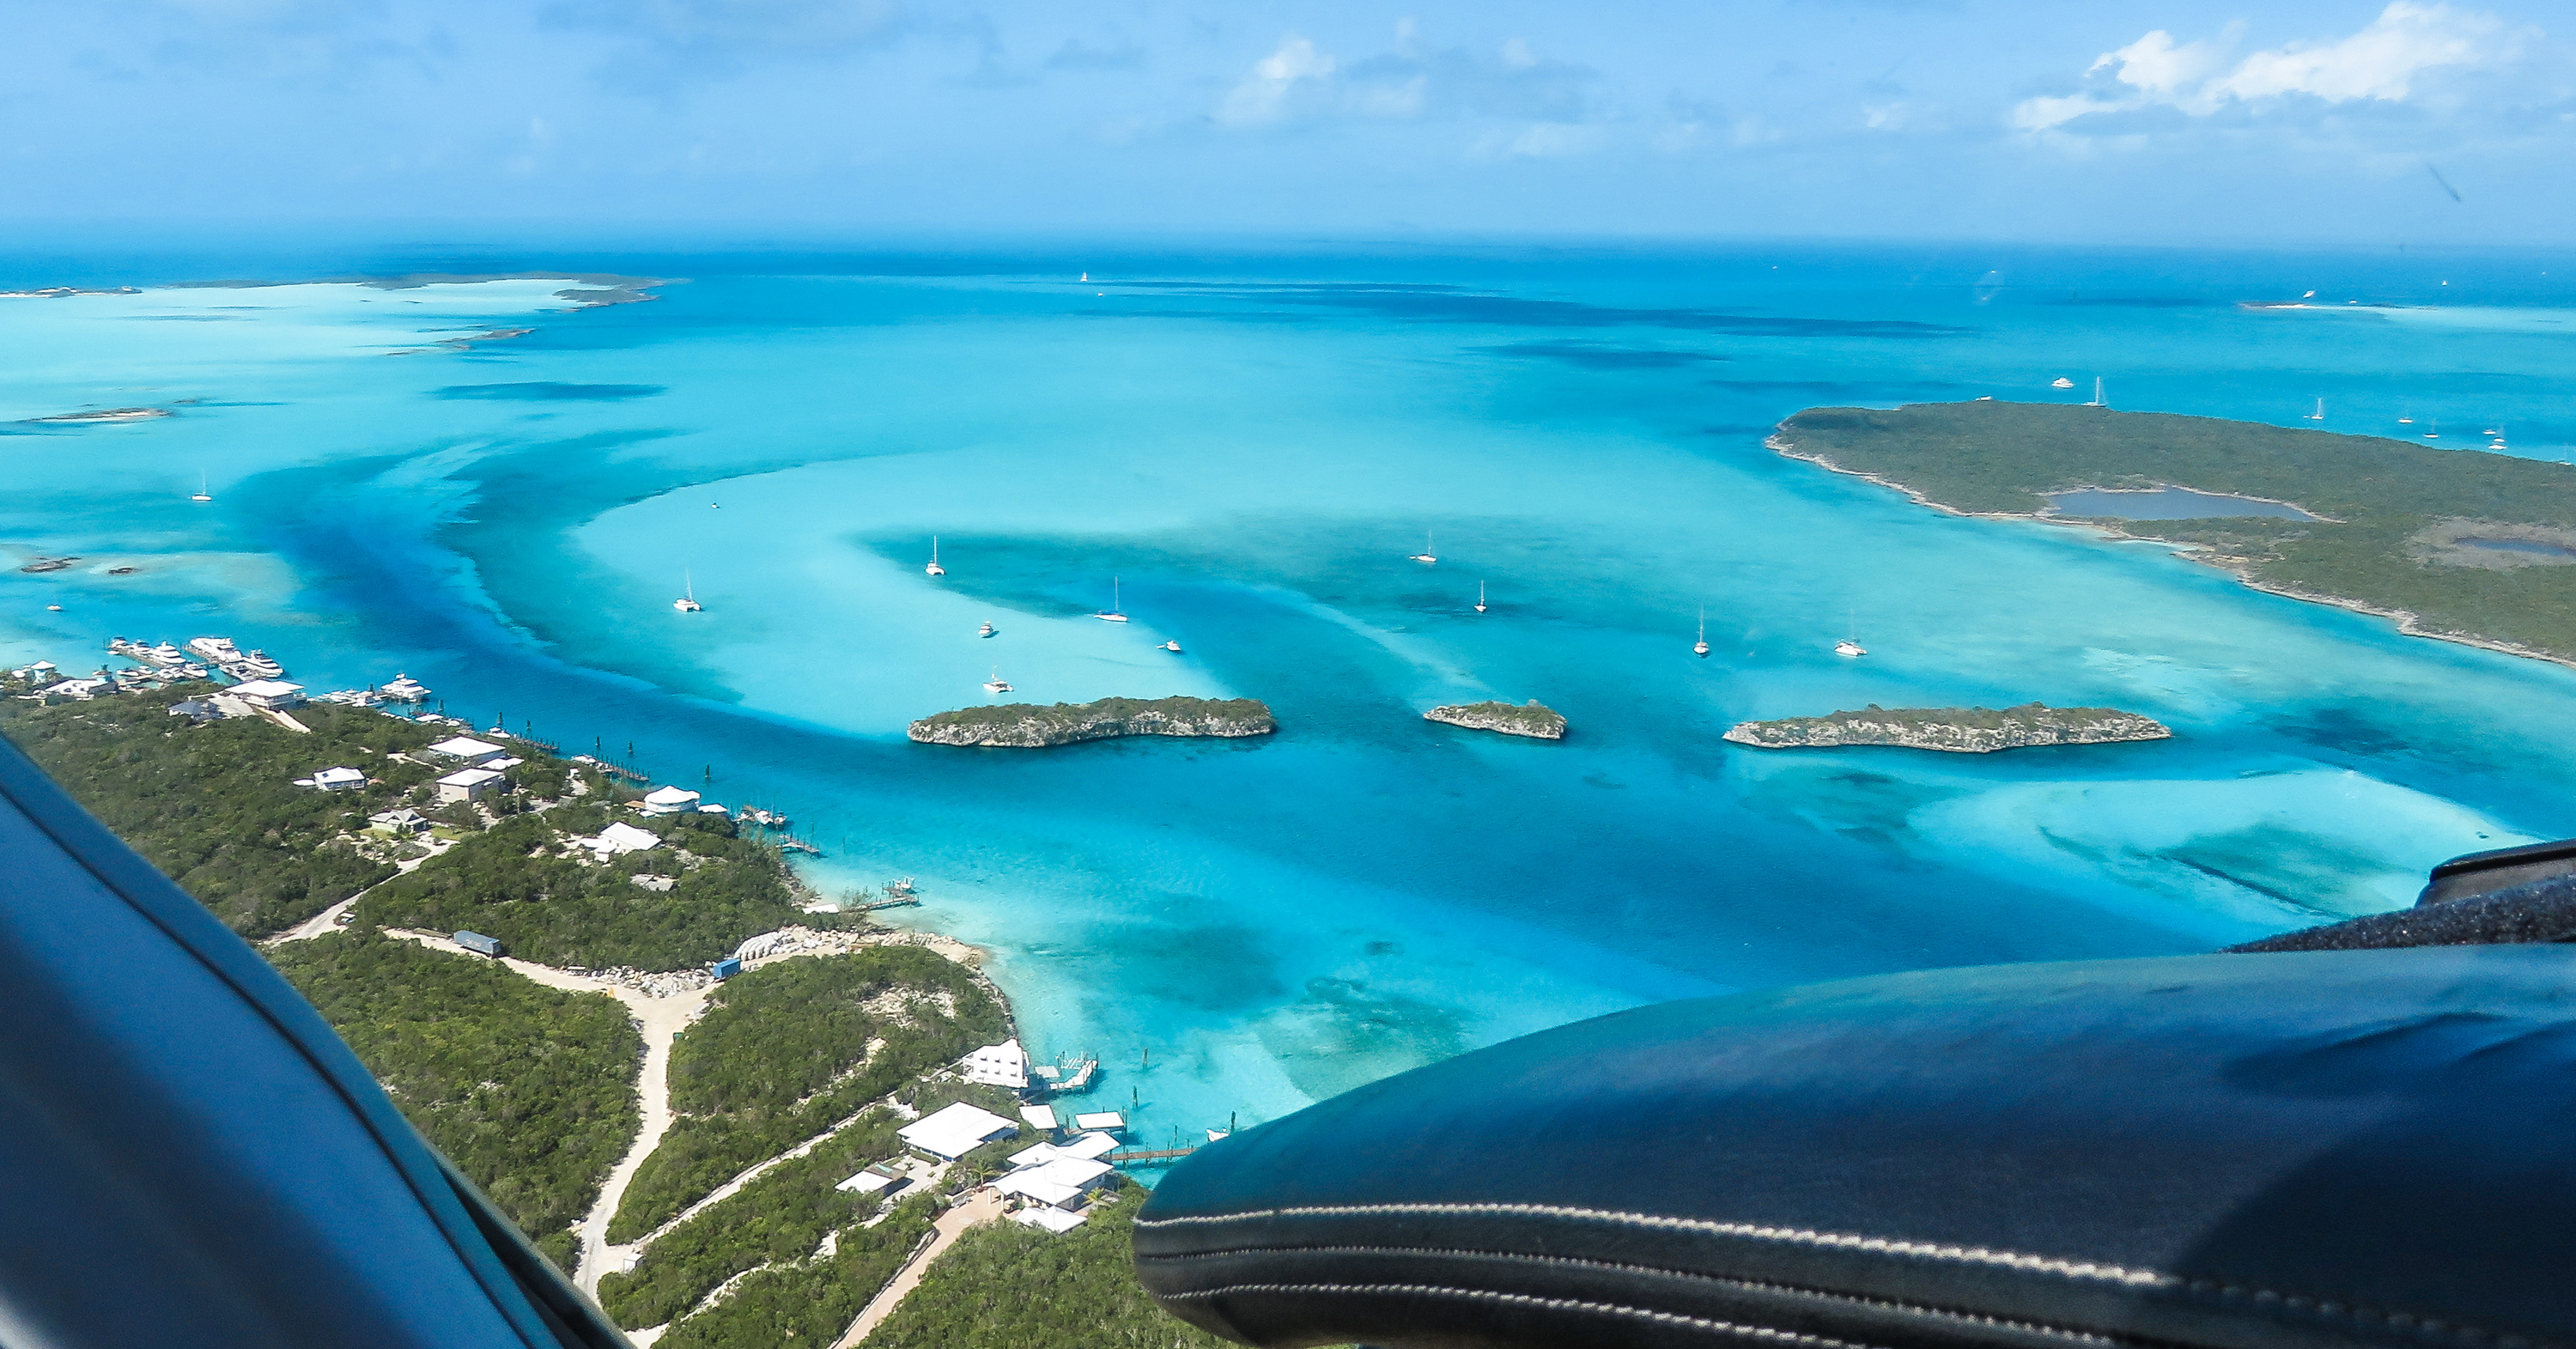 Flying into Staniel Cay Airport in the Exuma Cays